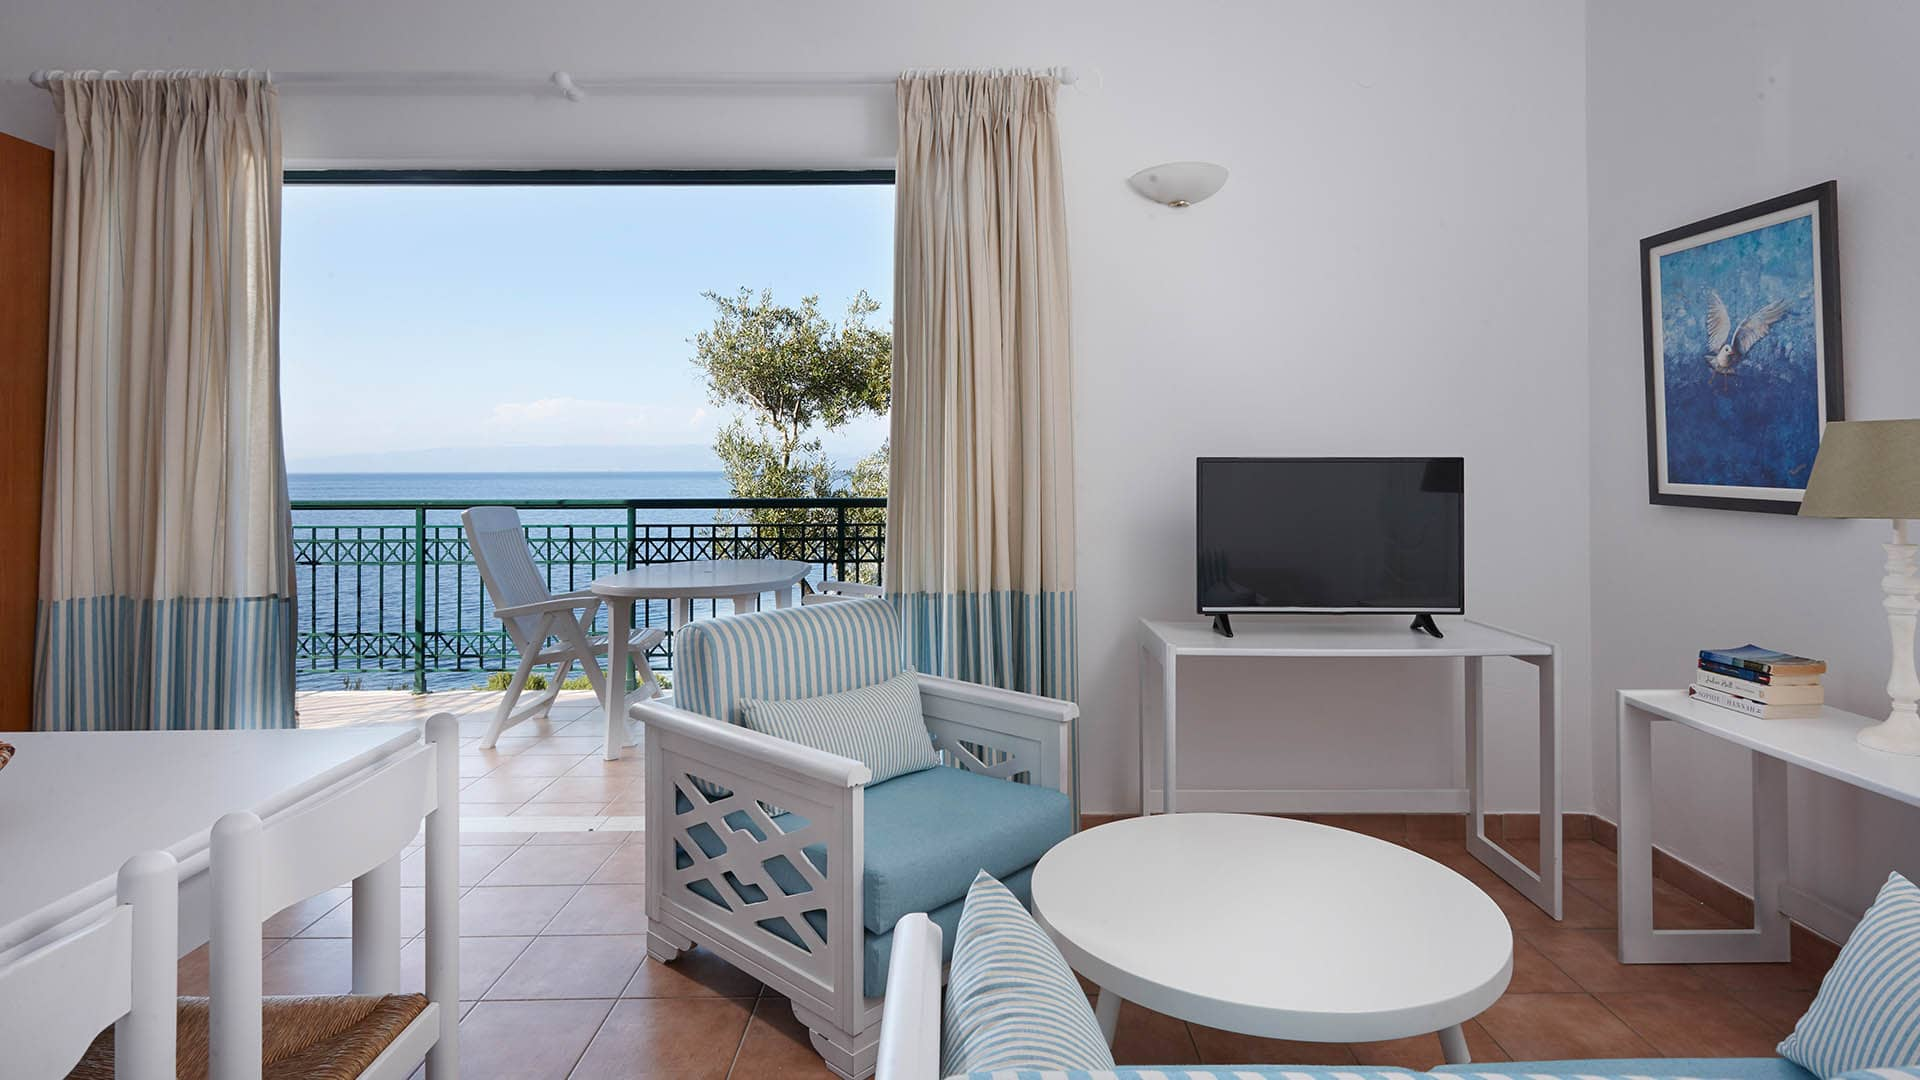 2 BEDROOM RESIDENCE WITH SEA VIEW